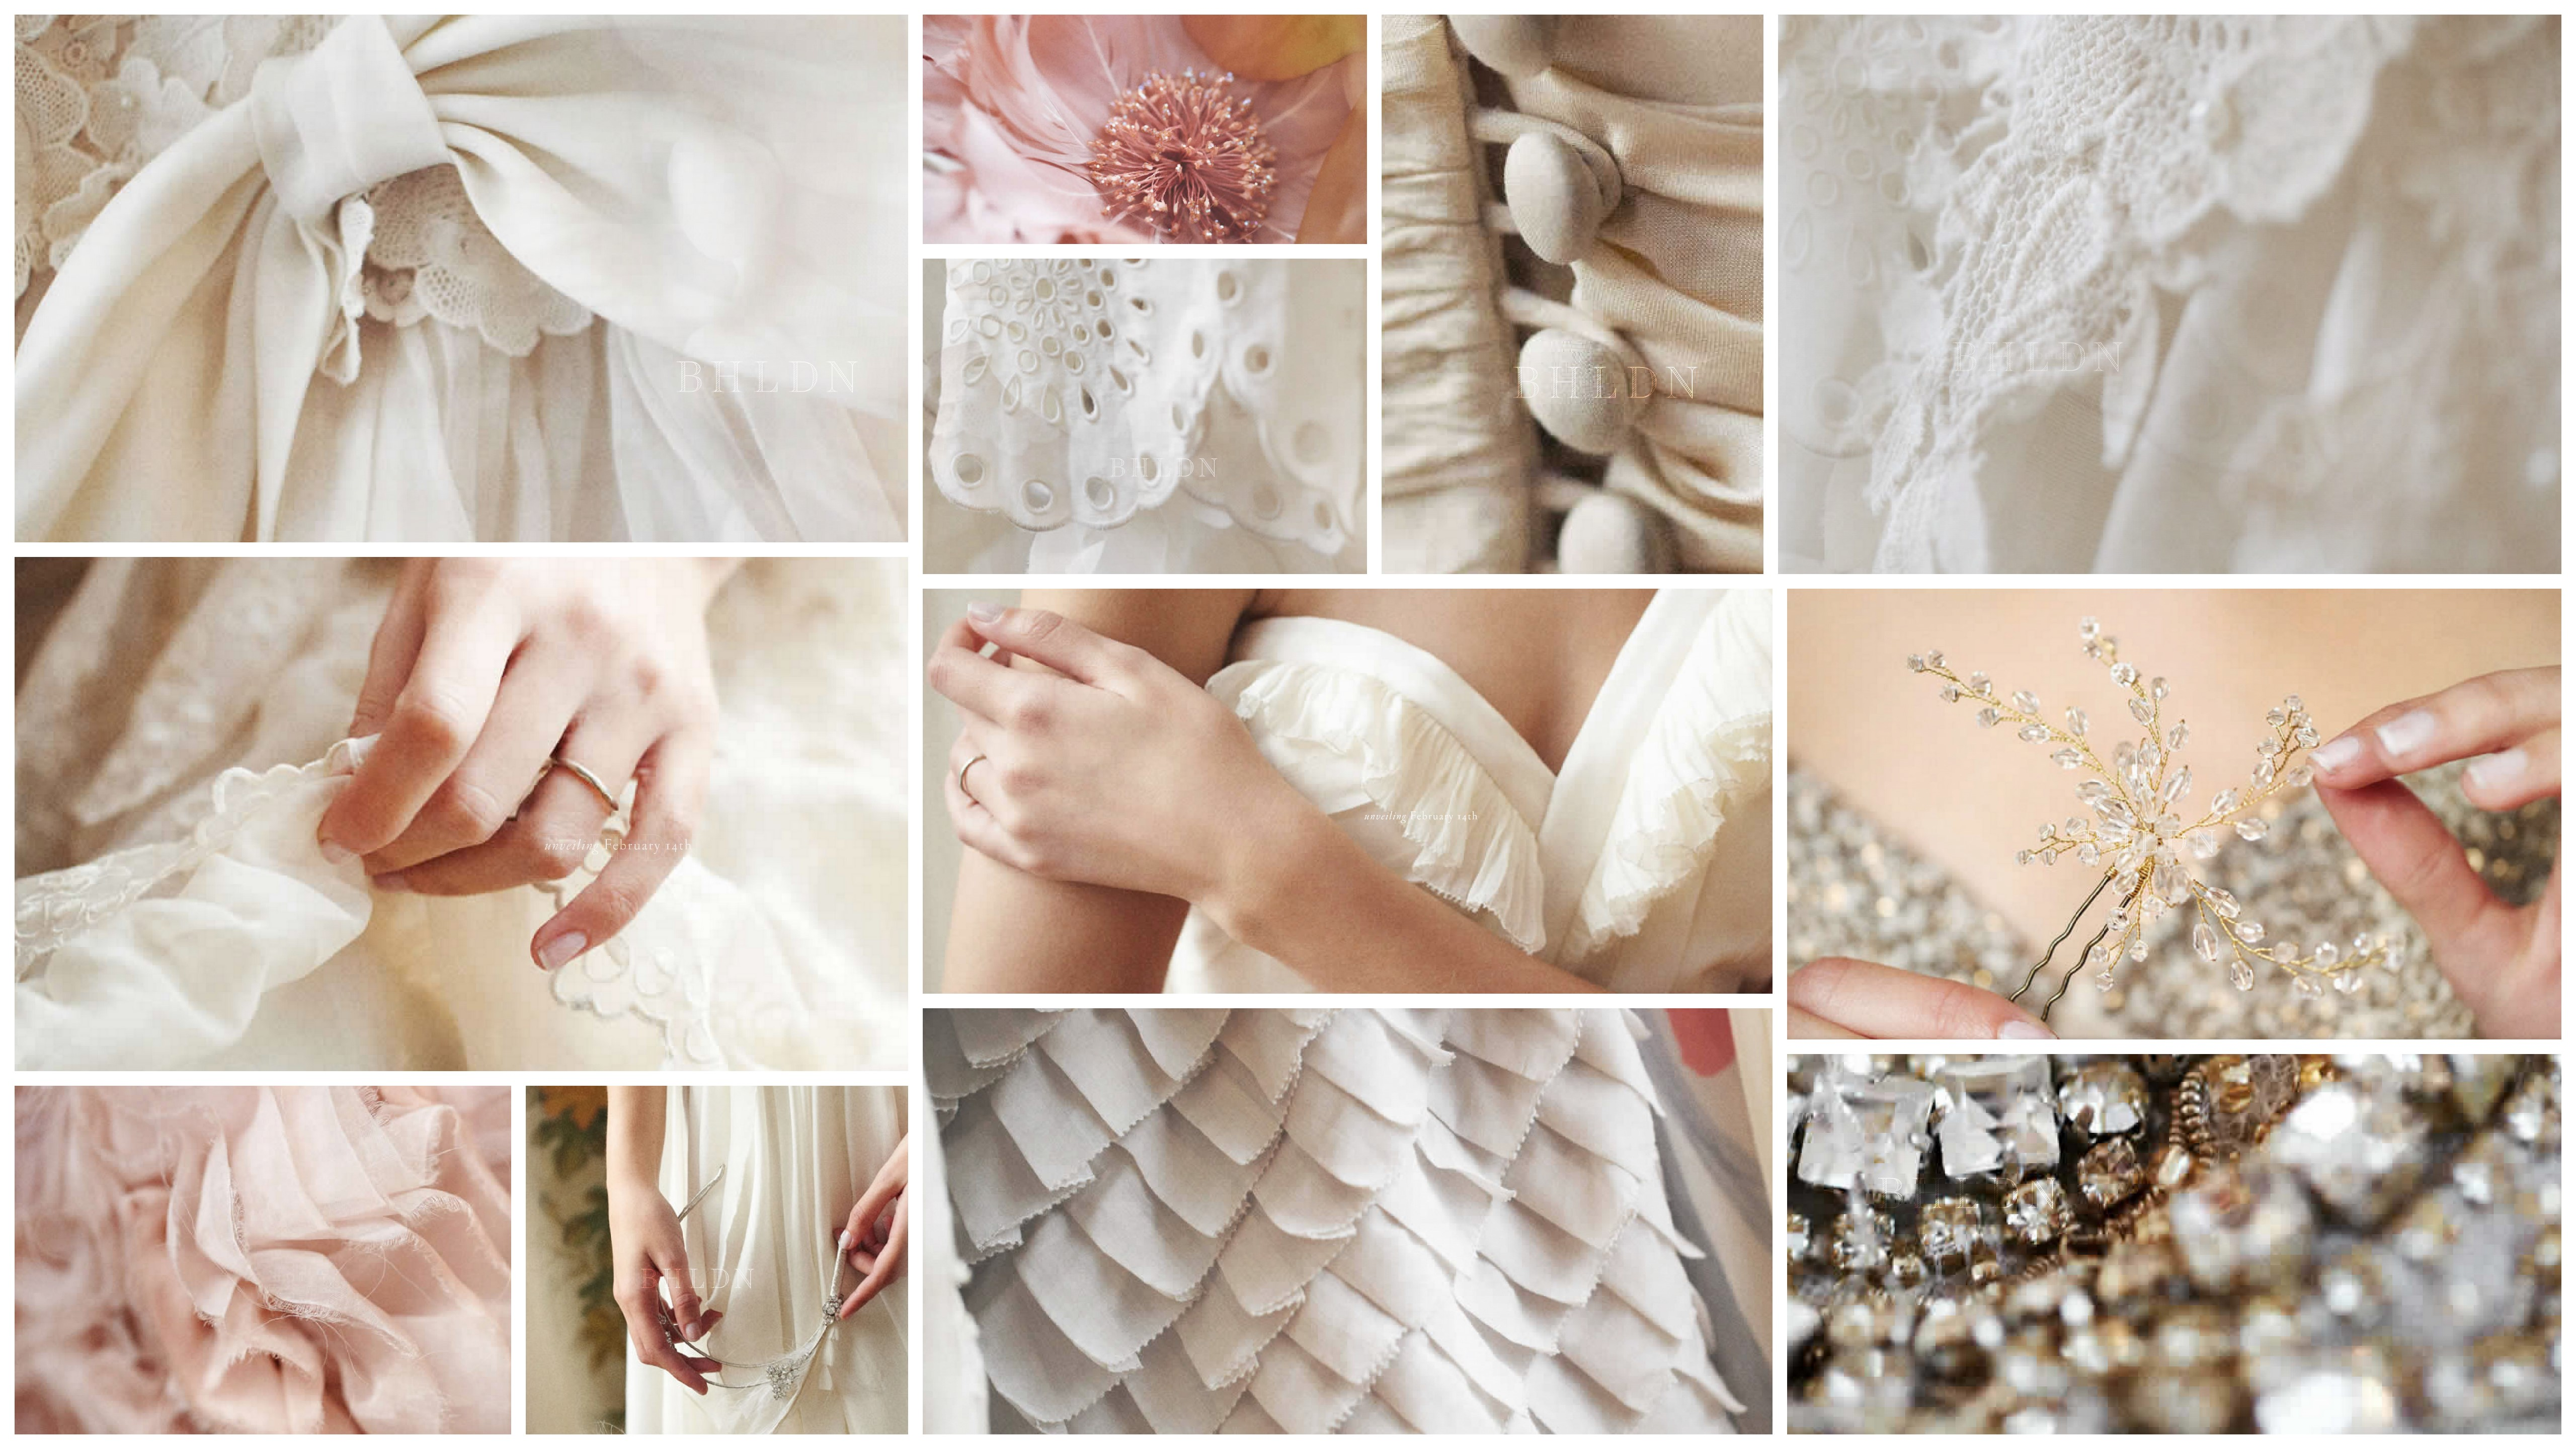 BHLDN Anthropologie Wedding Dresses??  Yes please!